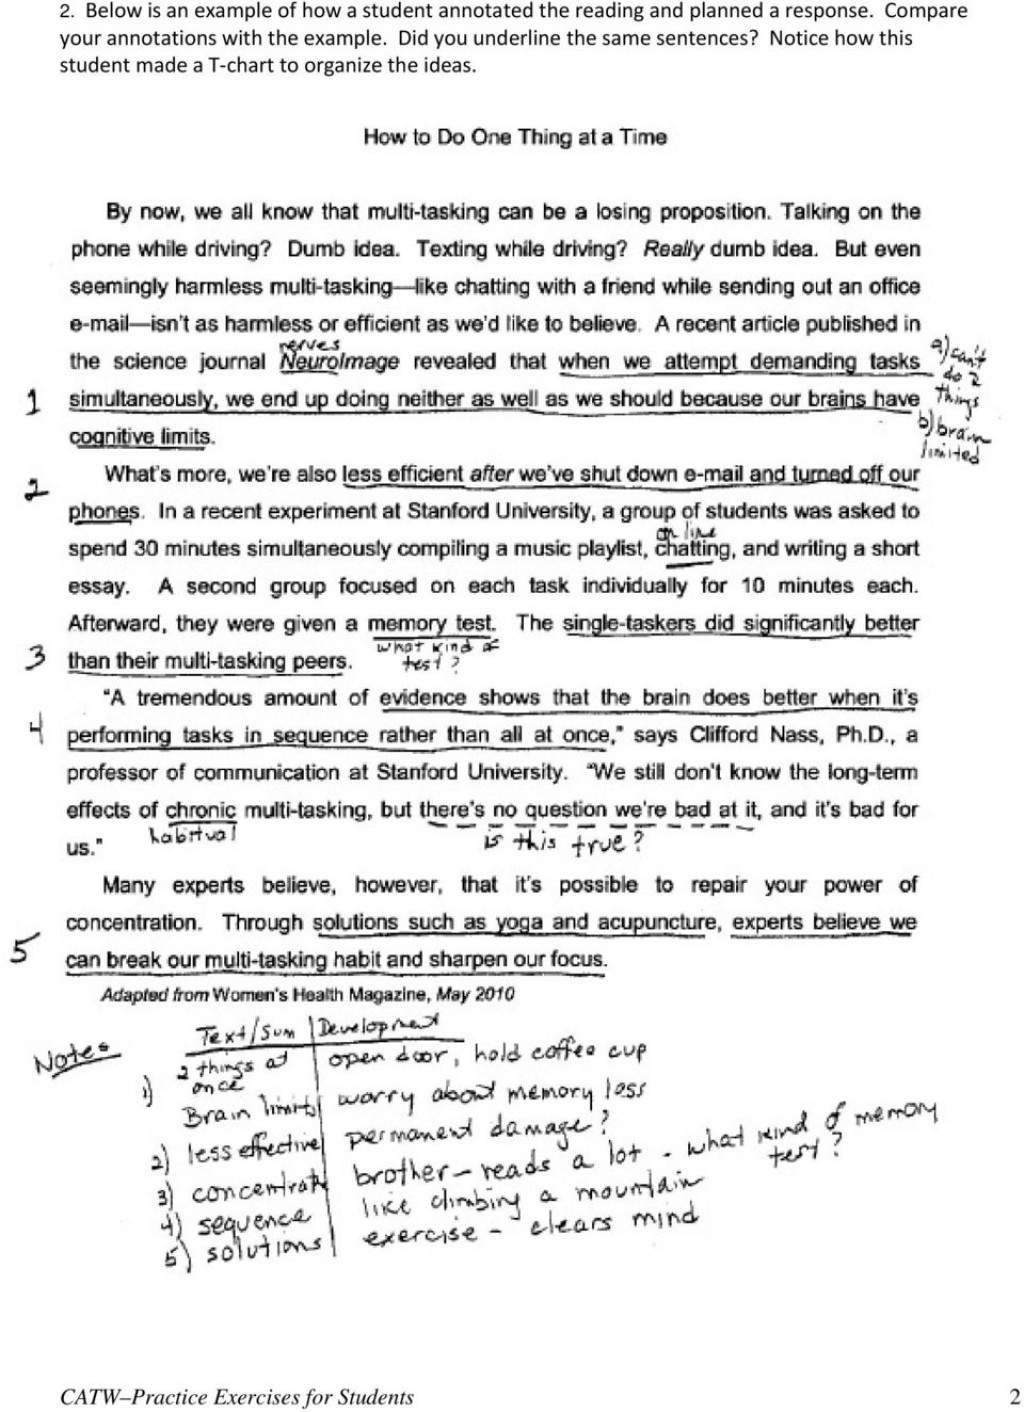 006 Research Paper Medical Page 3 Unbelievable Sample Papers Example Large